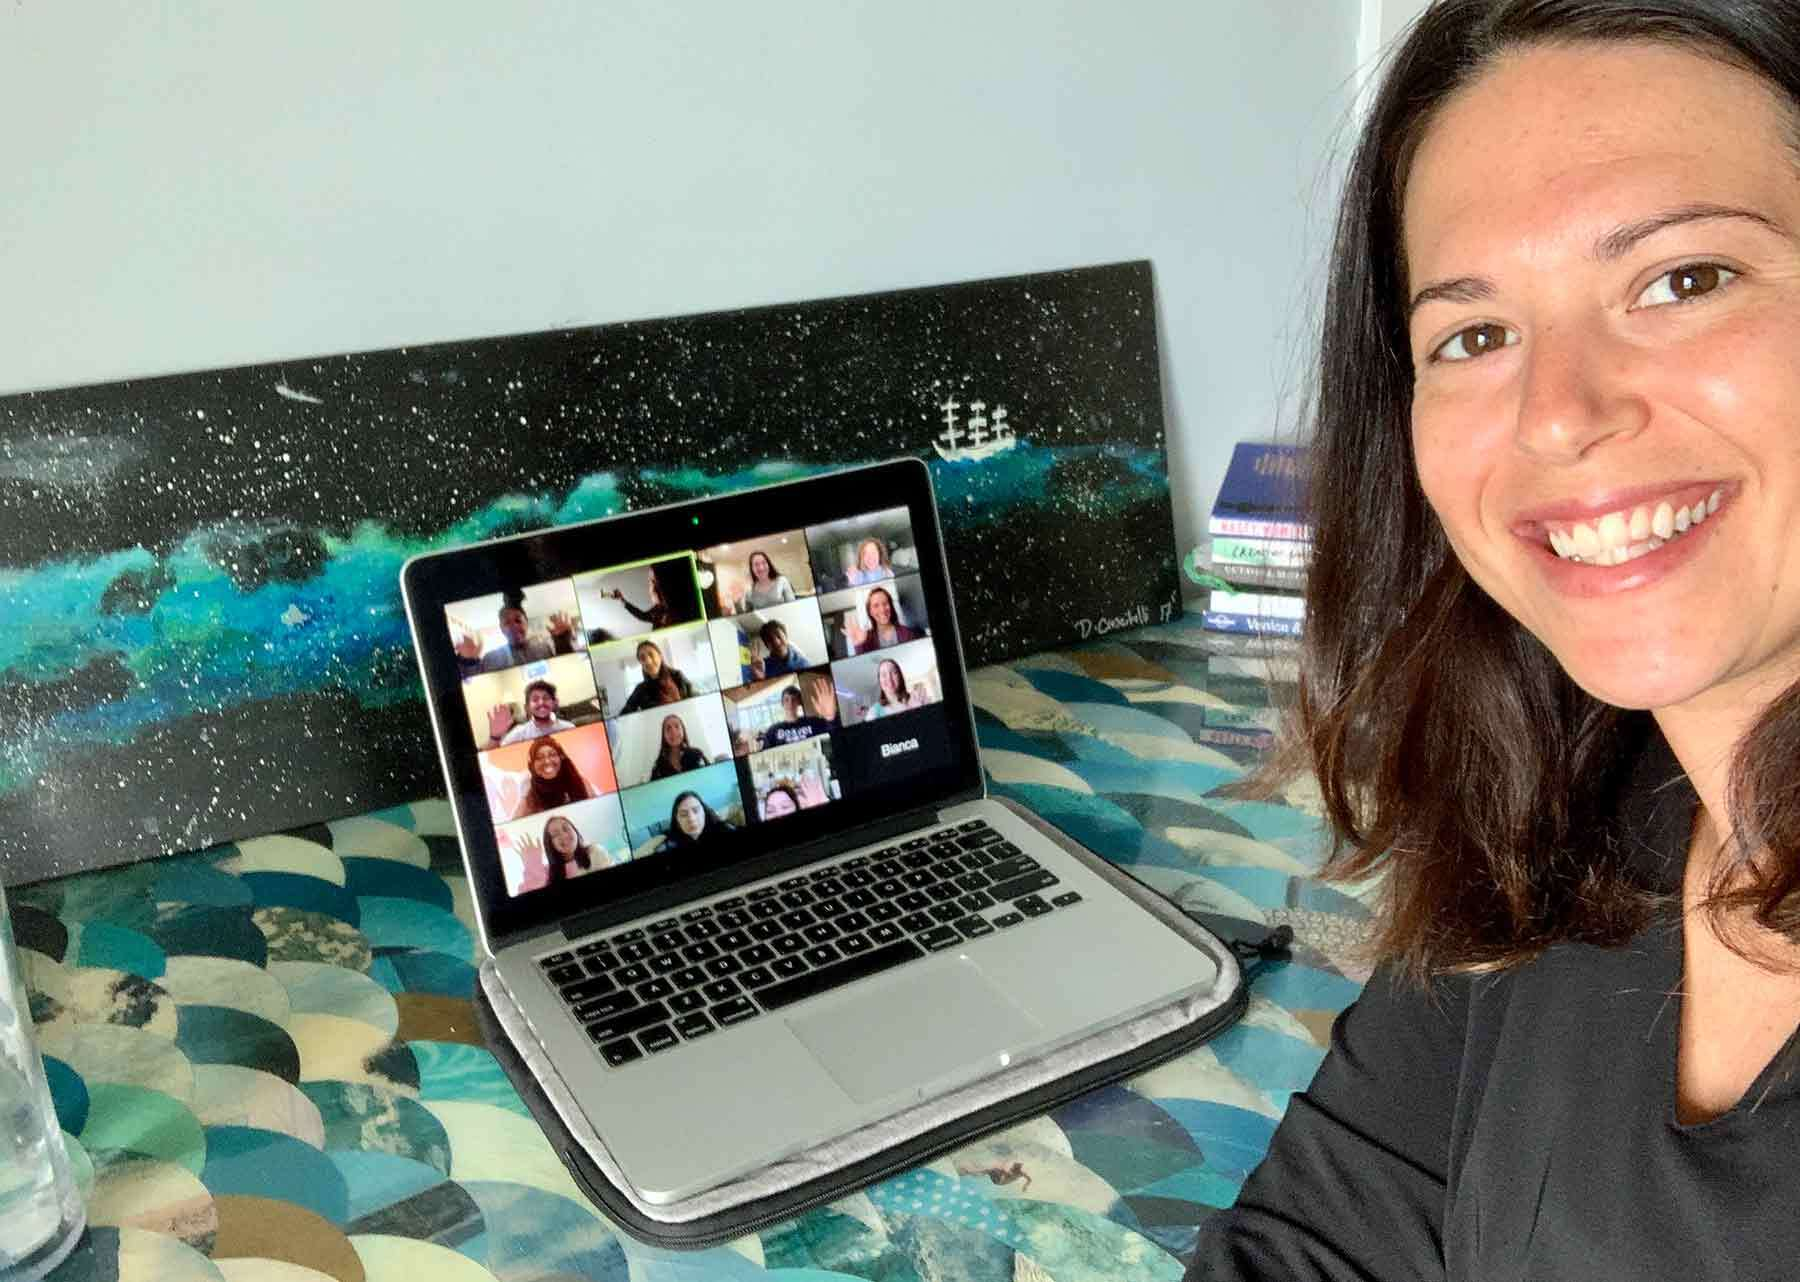 A smiling woman faces the viewer with a laptop full of students faces in a grid in the background